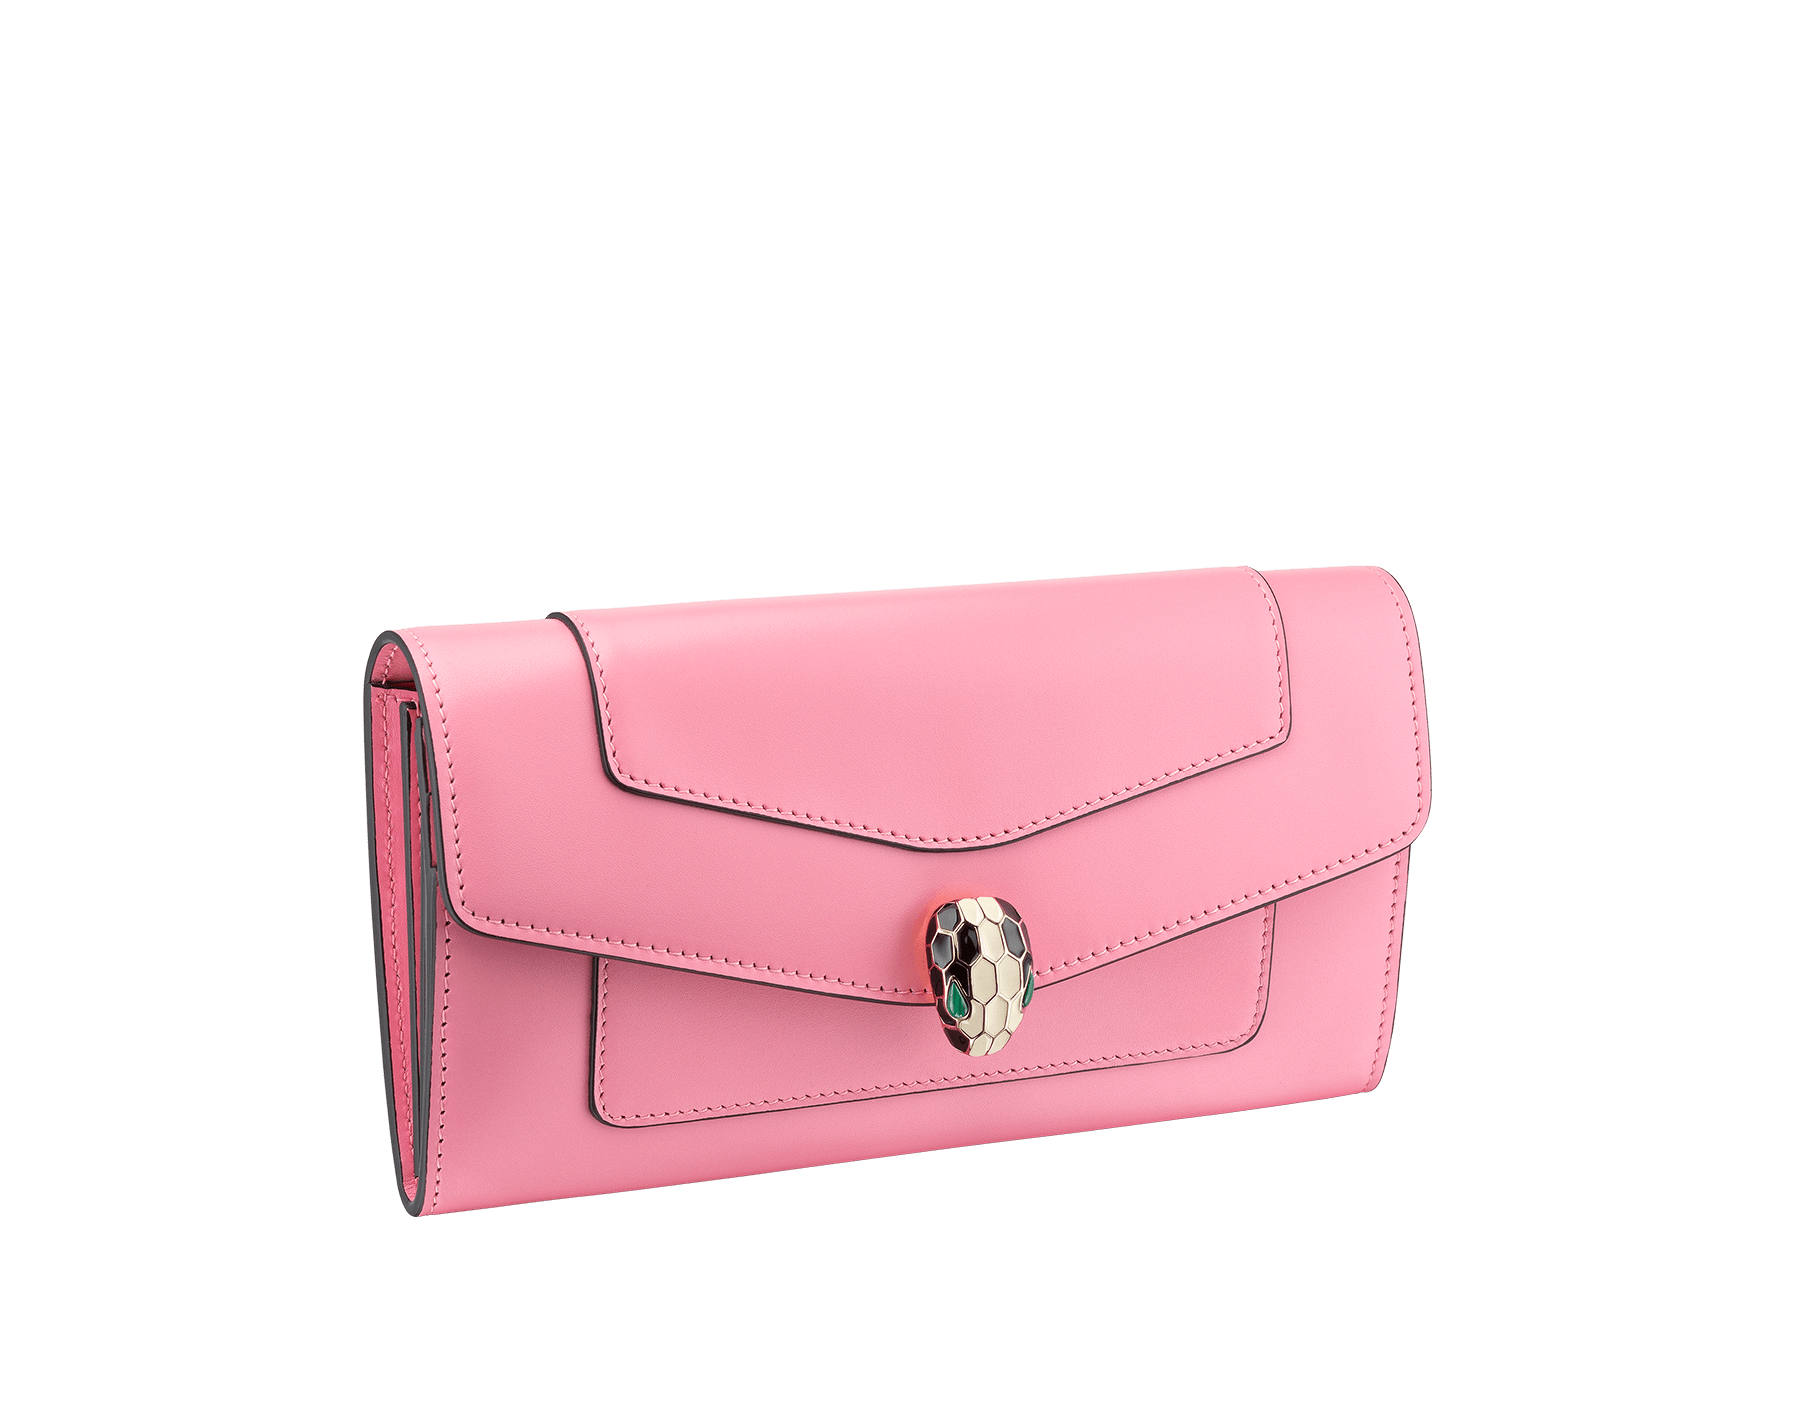 Serpenti Forever wallet pochette in candy quartz and carmine jasper calf leather. Iconic snakehead stud closure in black and white enamel, with green malachite eyes 287147 image 1